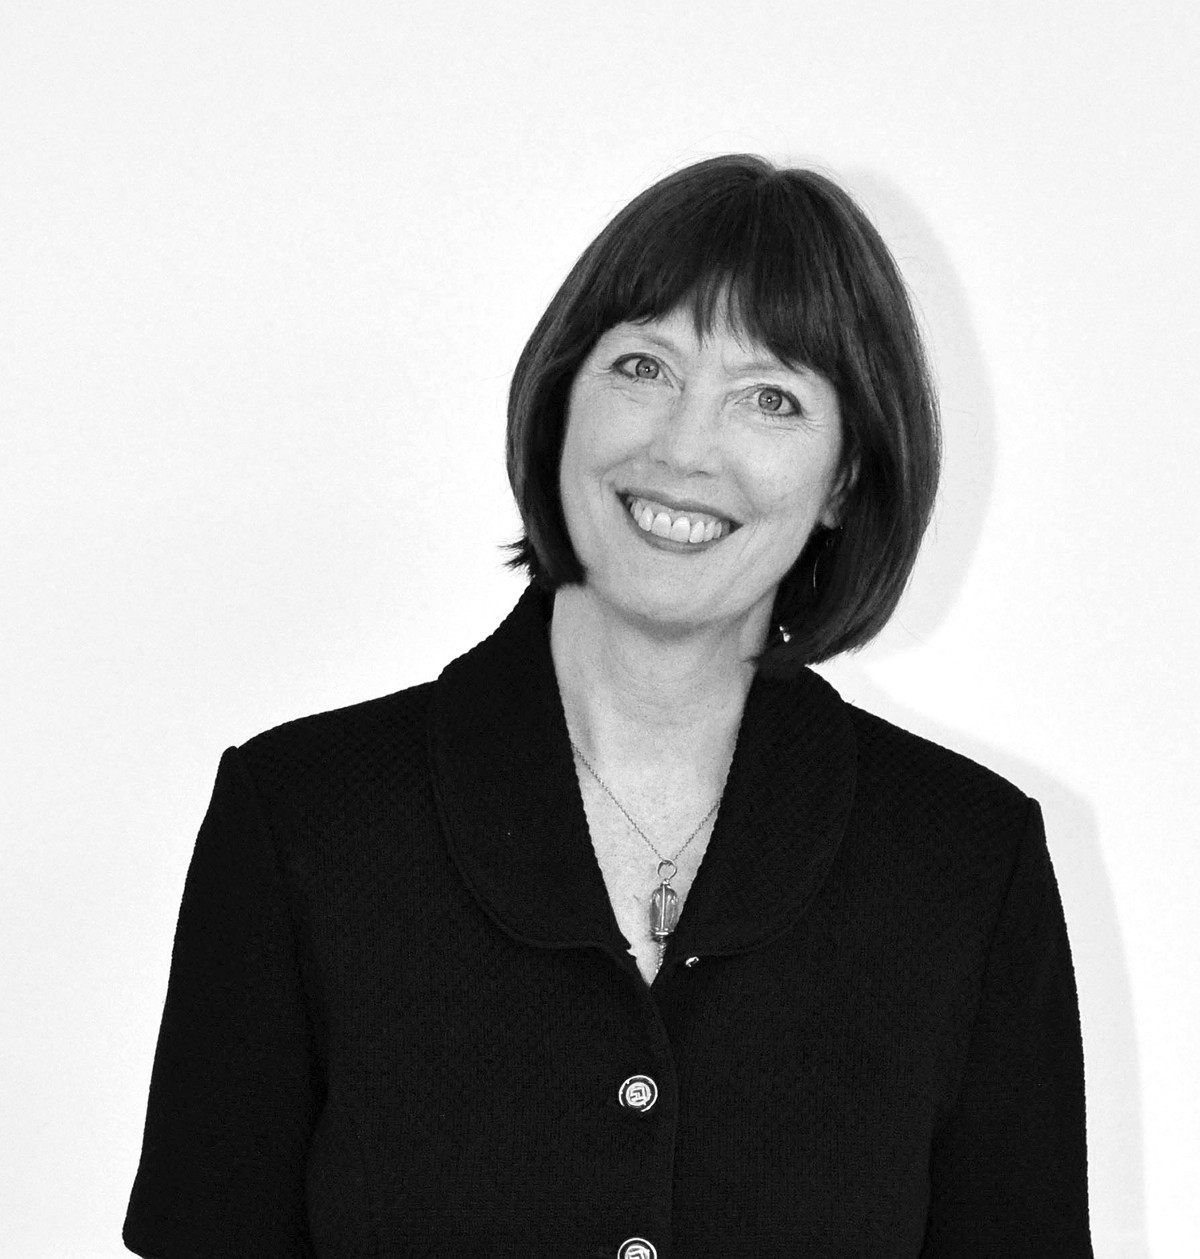 Elizabeth Eiss, CEO and Founder of ResultsResourcing.